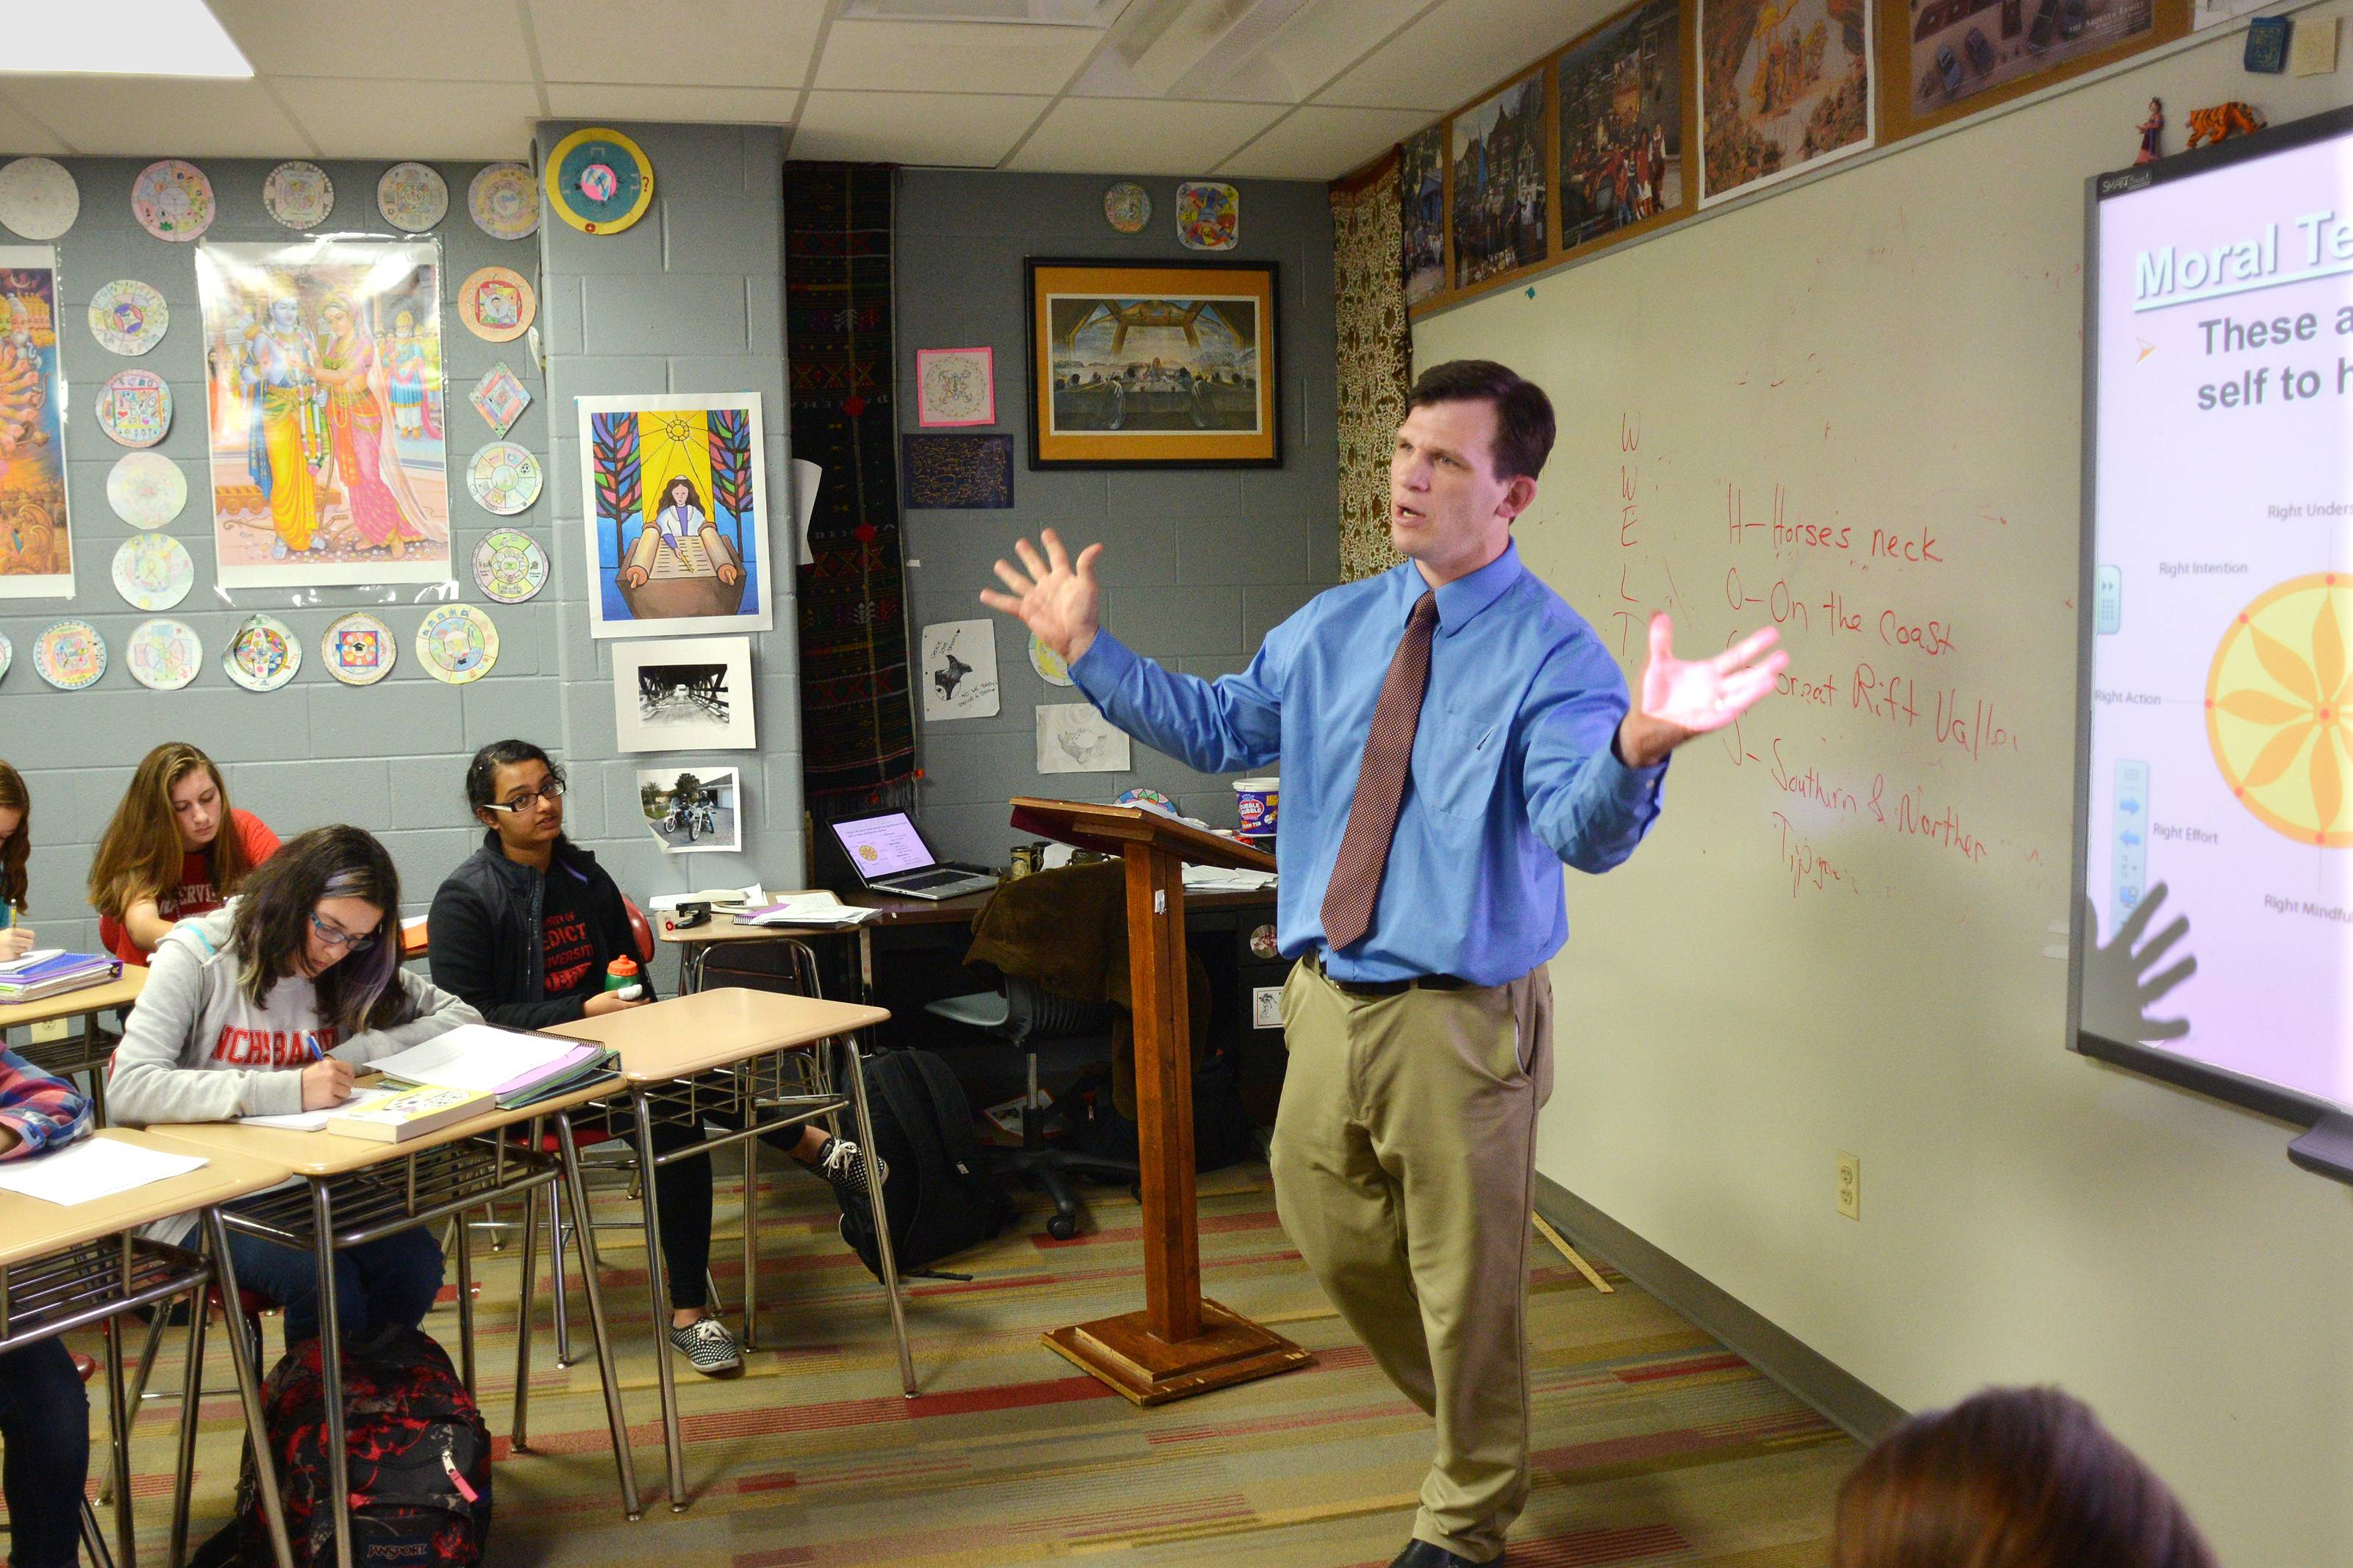 Suburban educators develop guidelines on teaching about religion